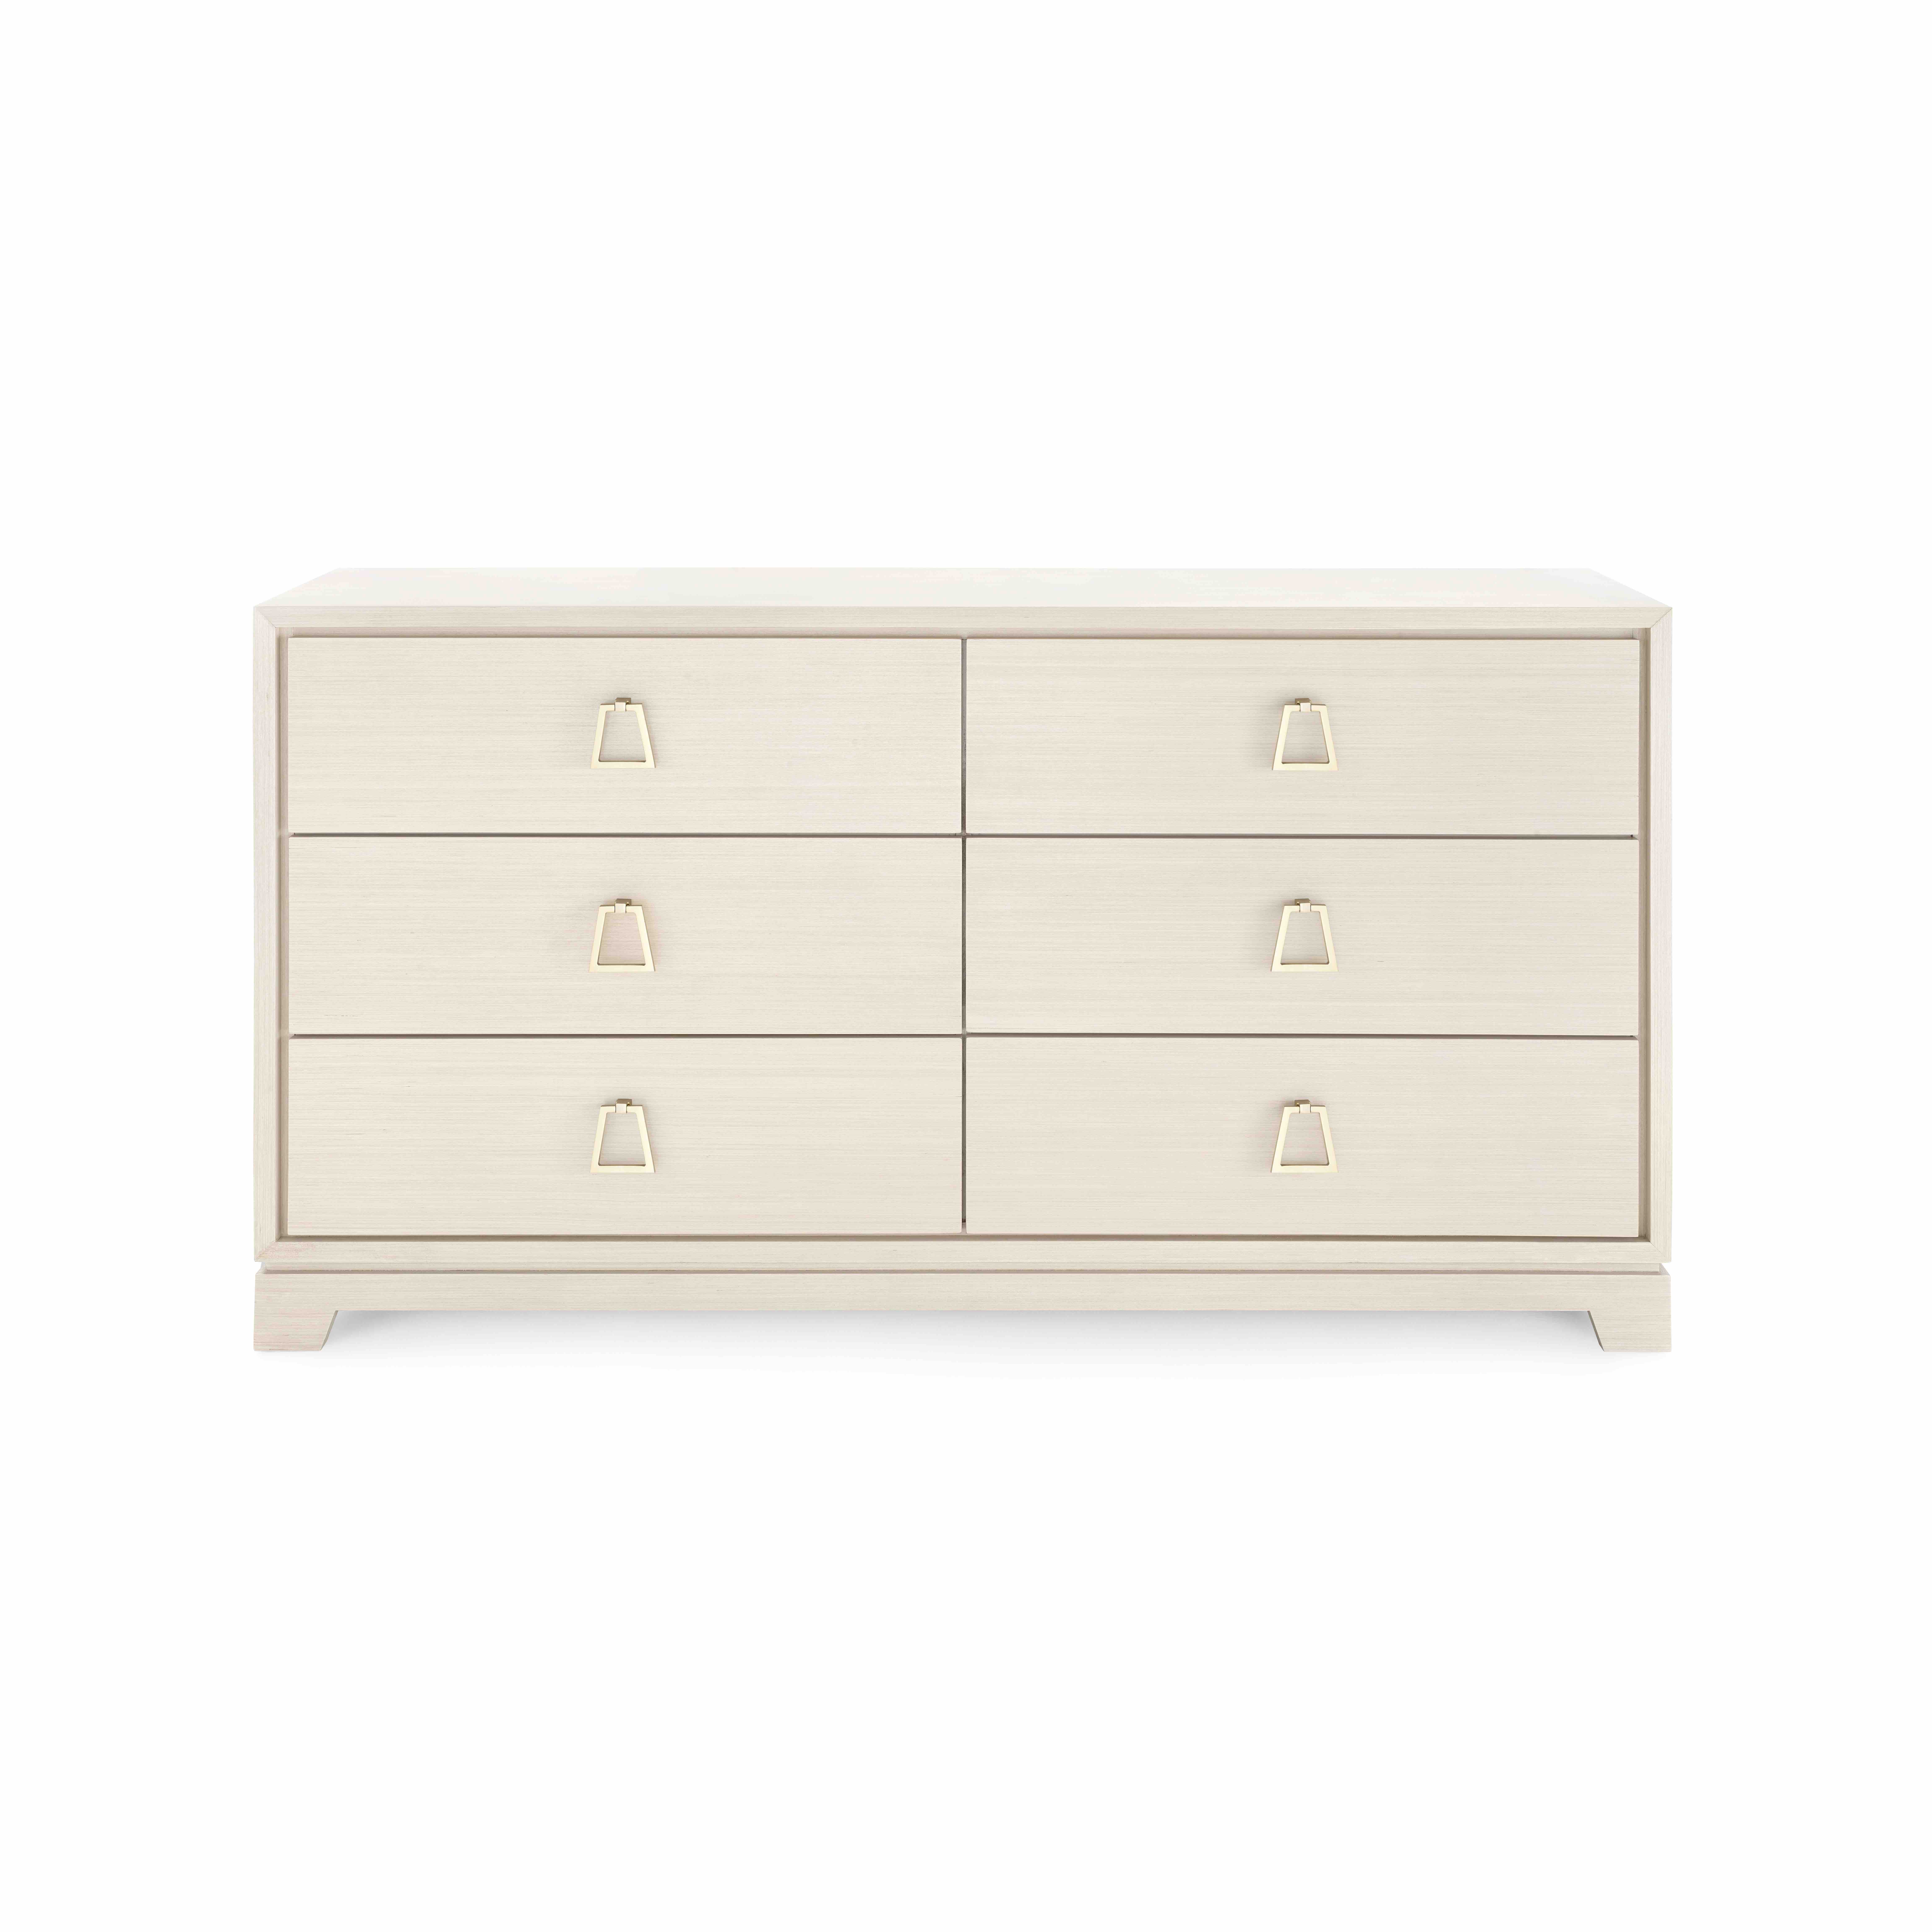 Bungalow 5 Stanford drawer chest